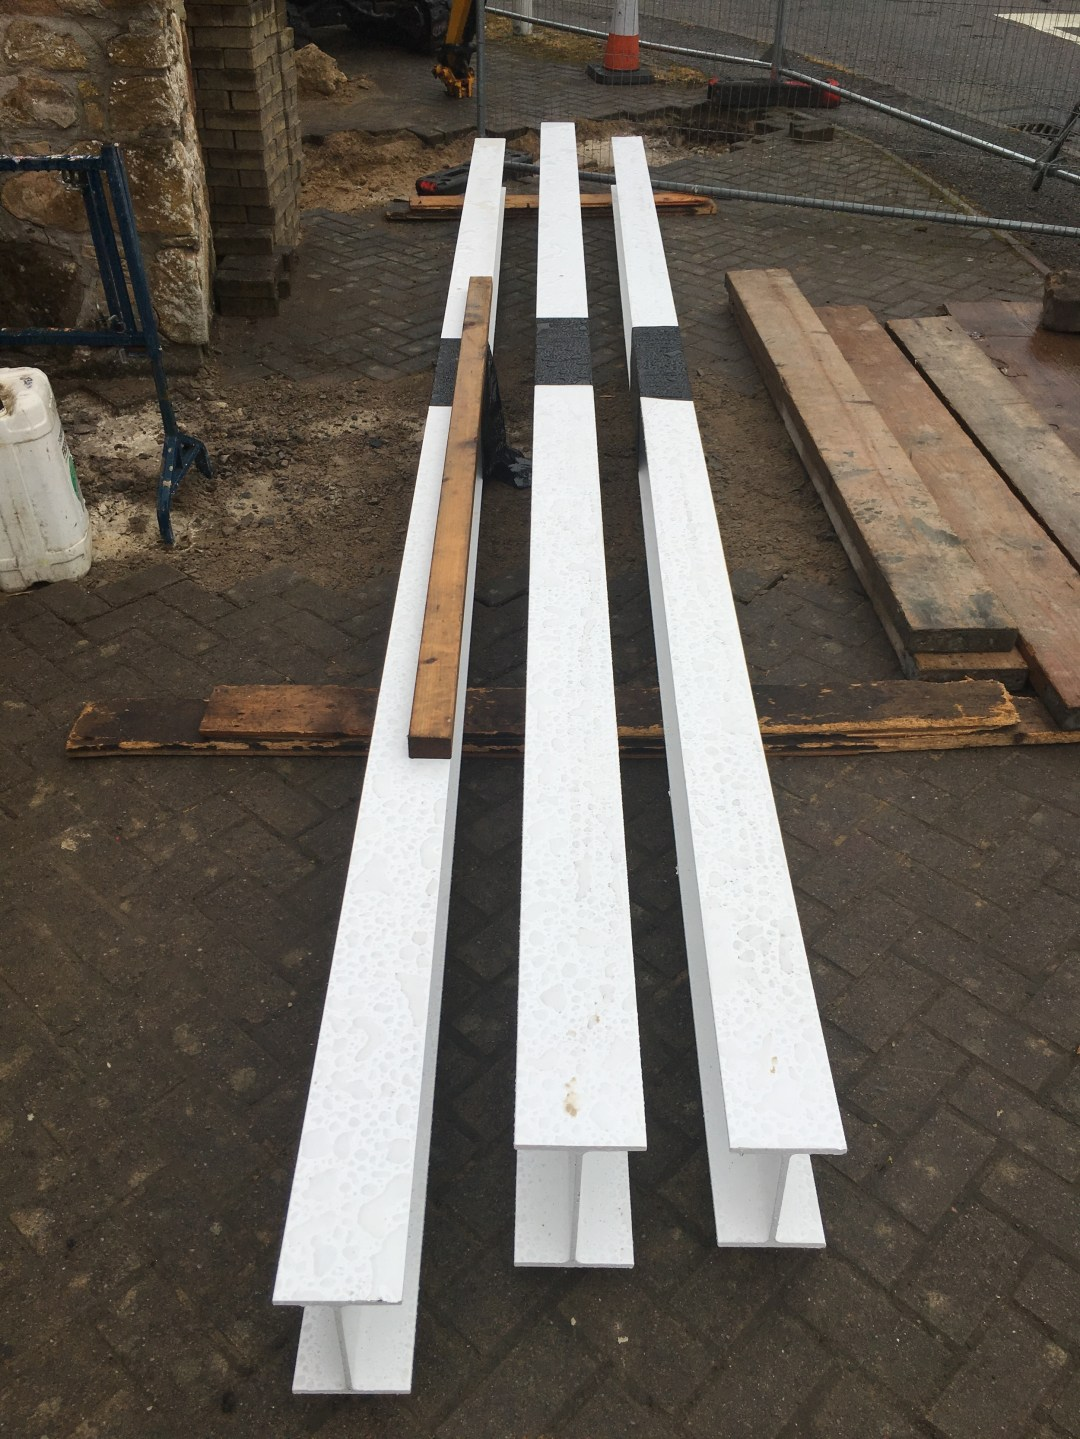 Support beams for the 1st floor!